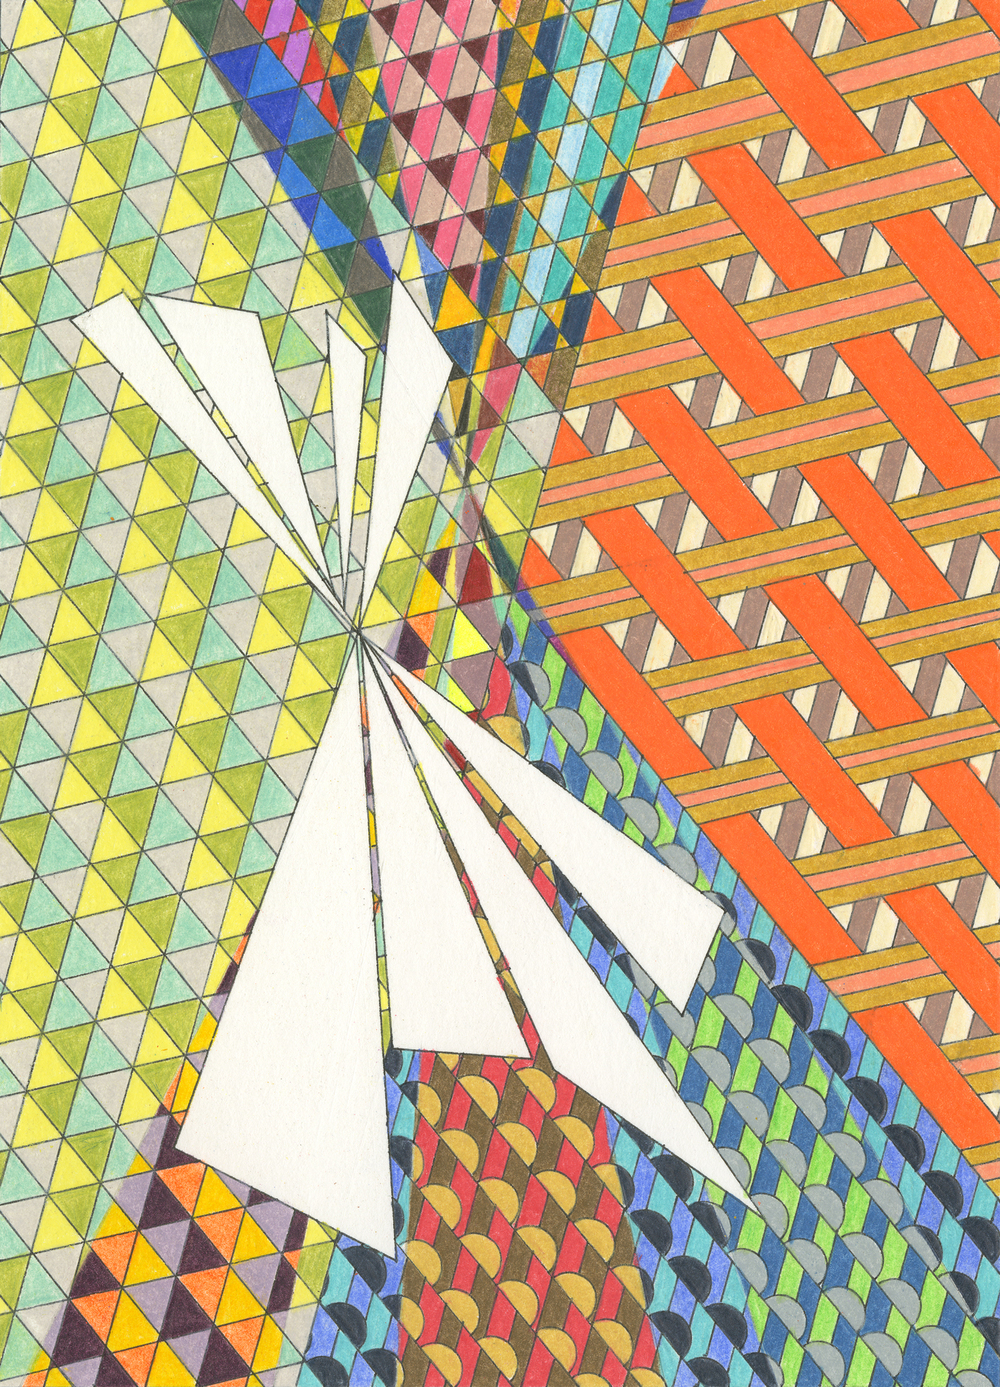 "Teepee, ink and colored pencil, 5"" x 7"", 2013"